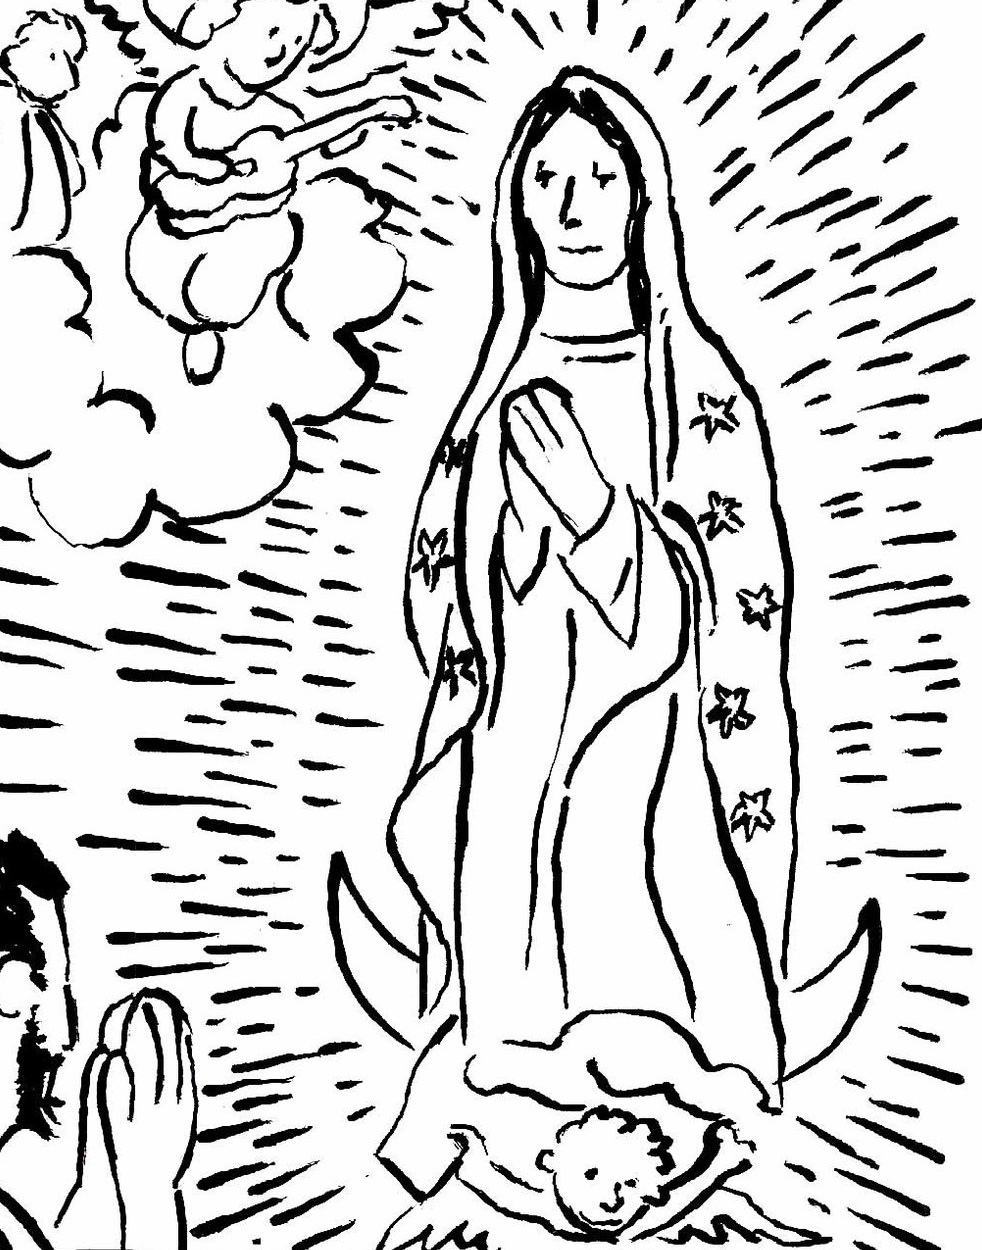 Our Lady of Guadalupe was very moving to render, so I was careful to keep it serious, even if it is a cartoony style.